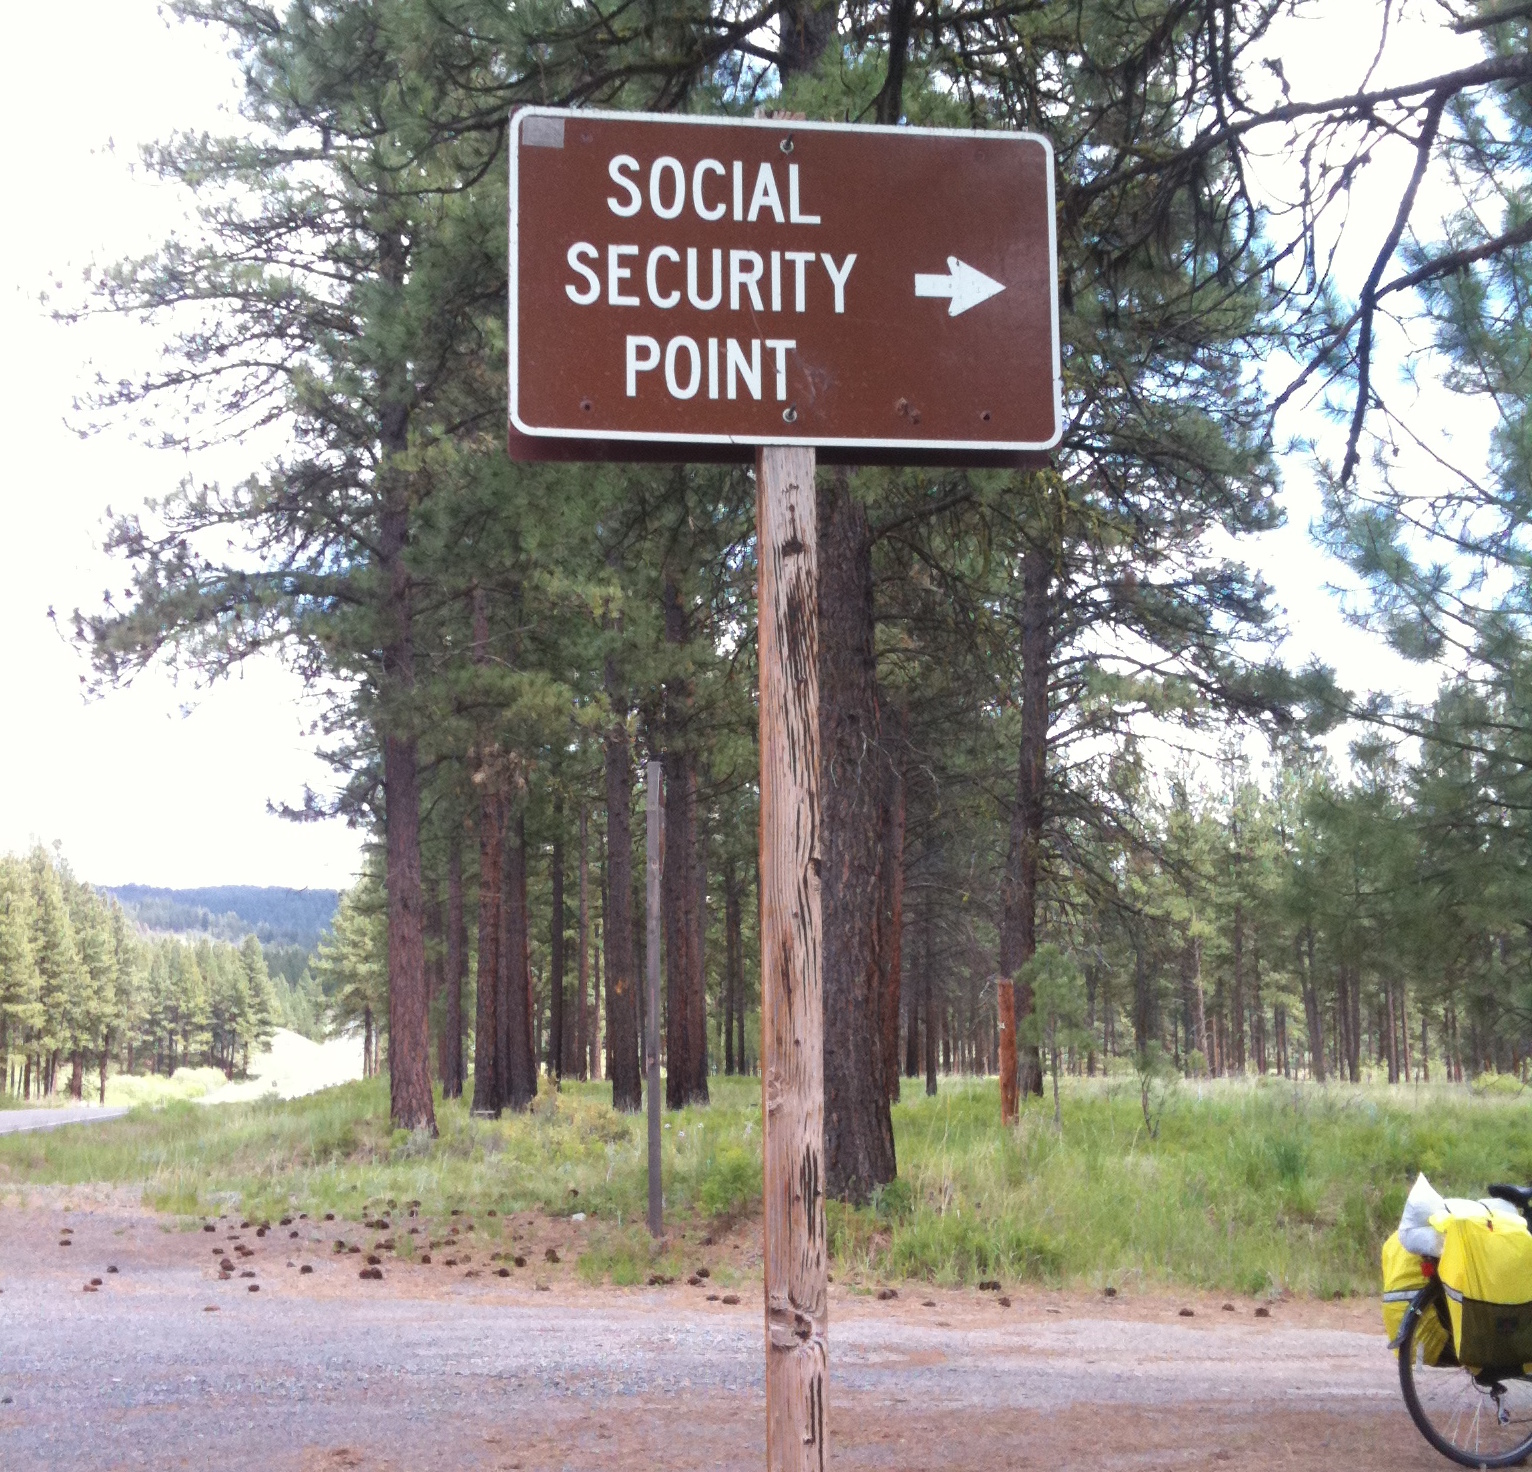 Social Security point